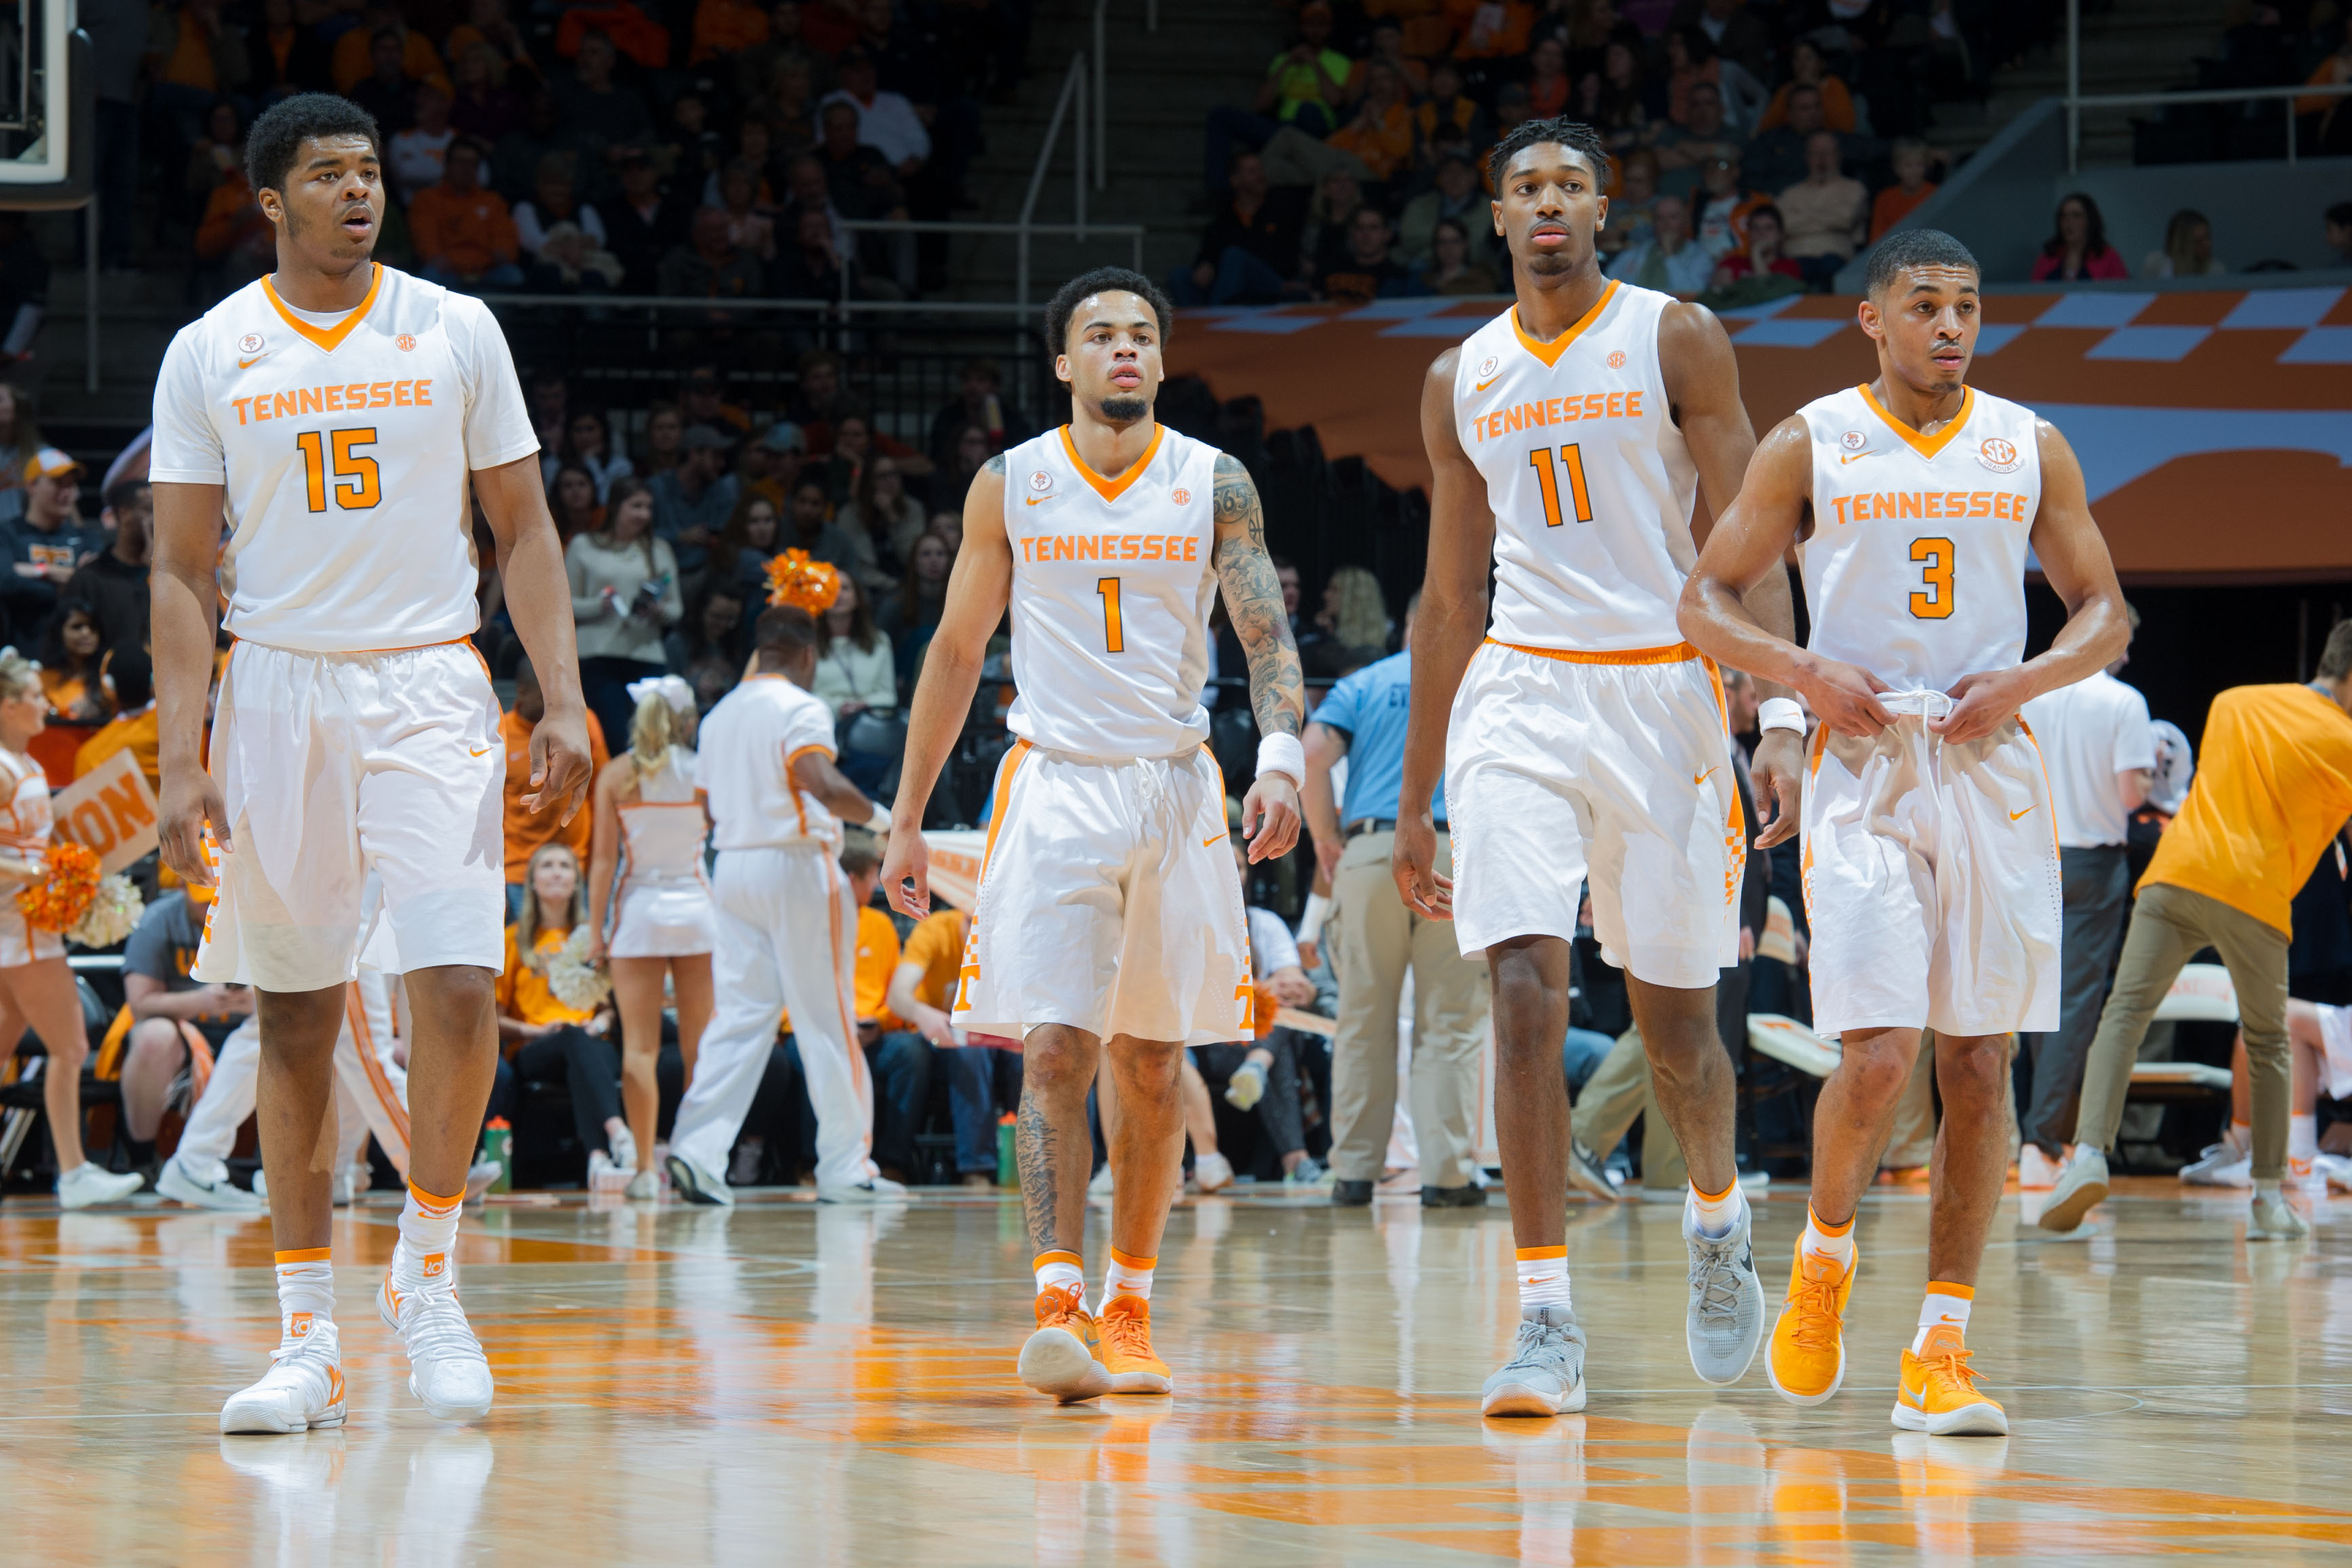 Wide right natty lite archives iowa state basketball page 1 basketball preview were talking tennessee publicscrutiny Images